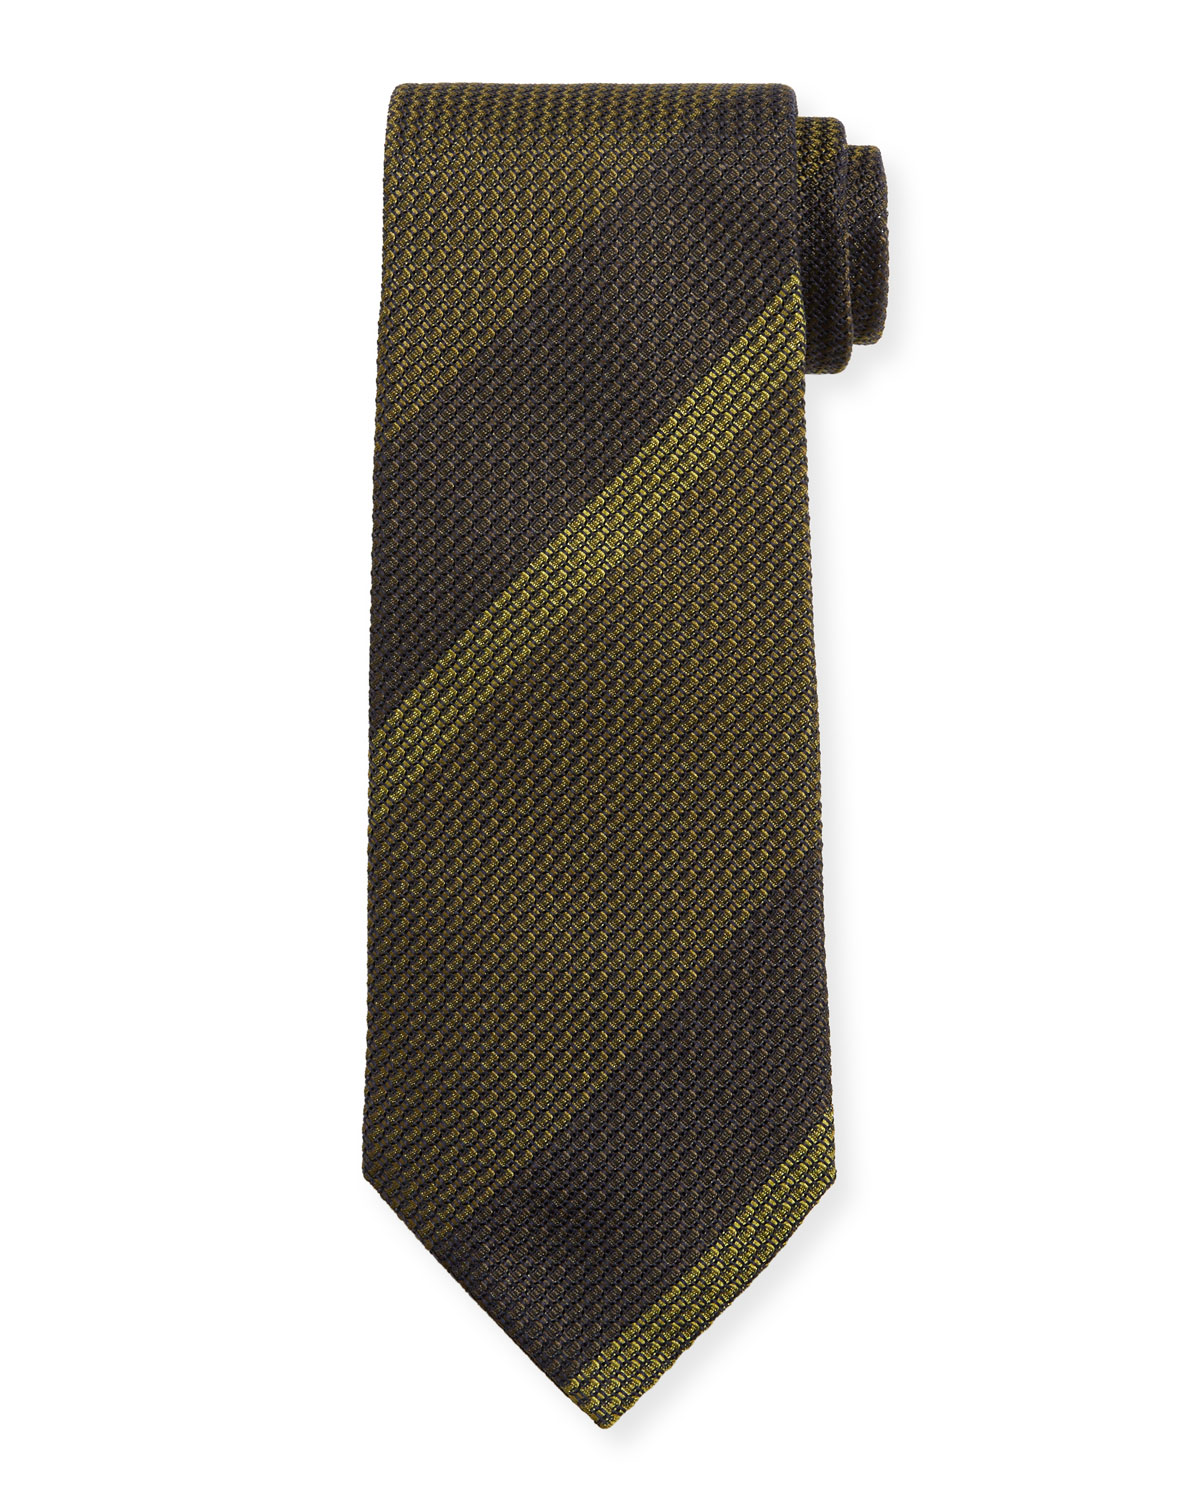 TOM FORD Large-Stripe Silk Tie, Green